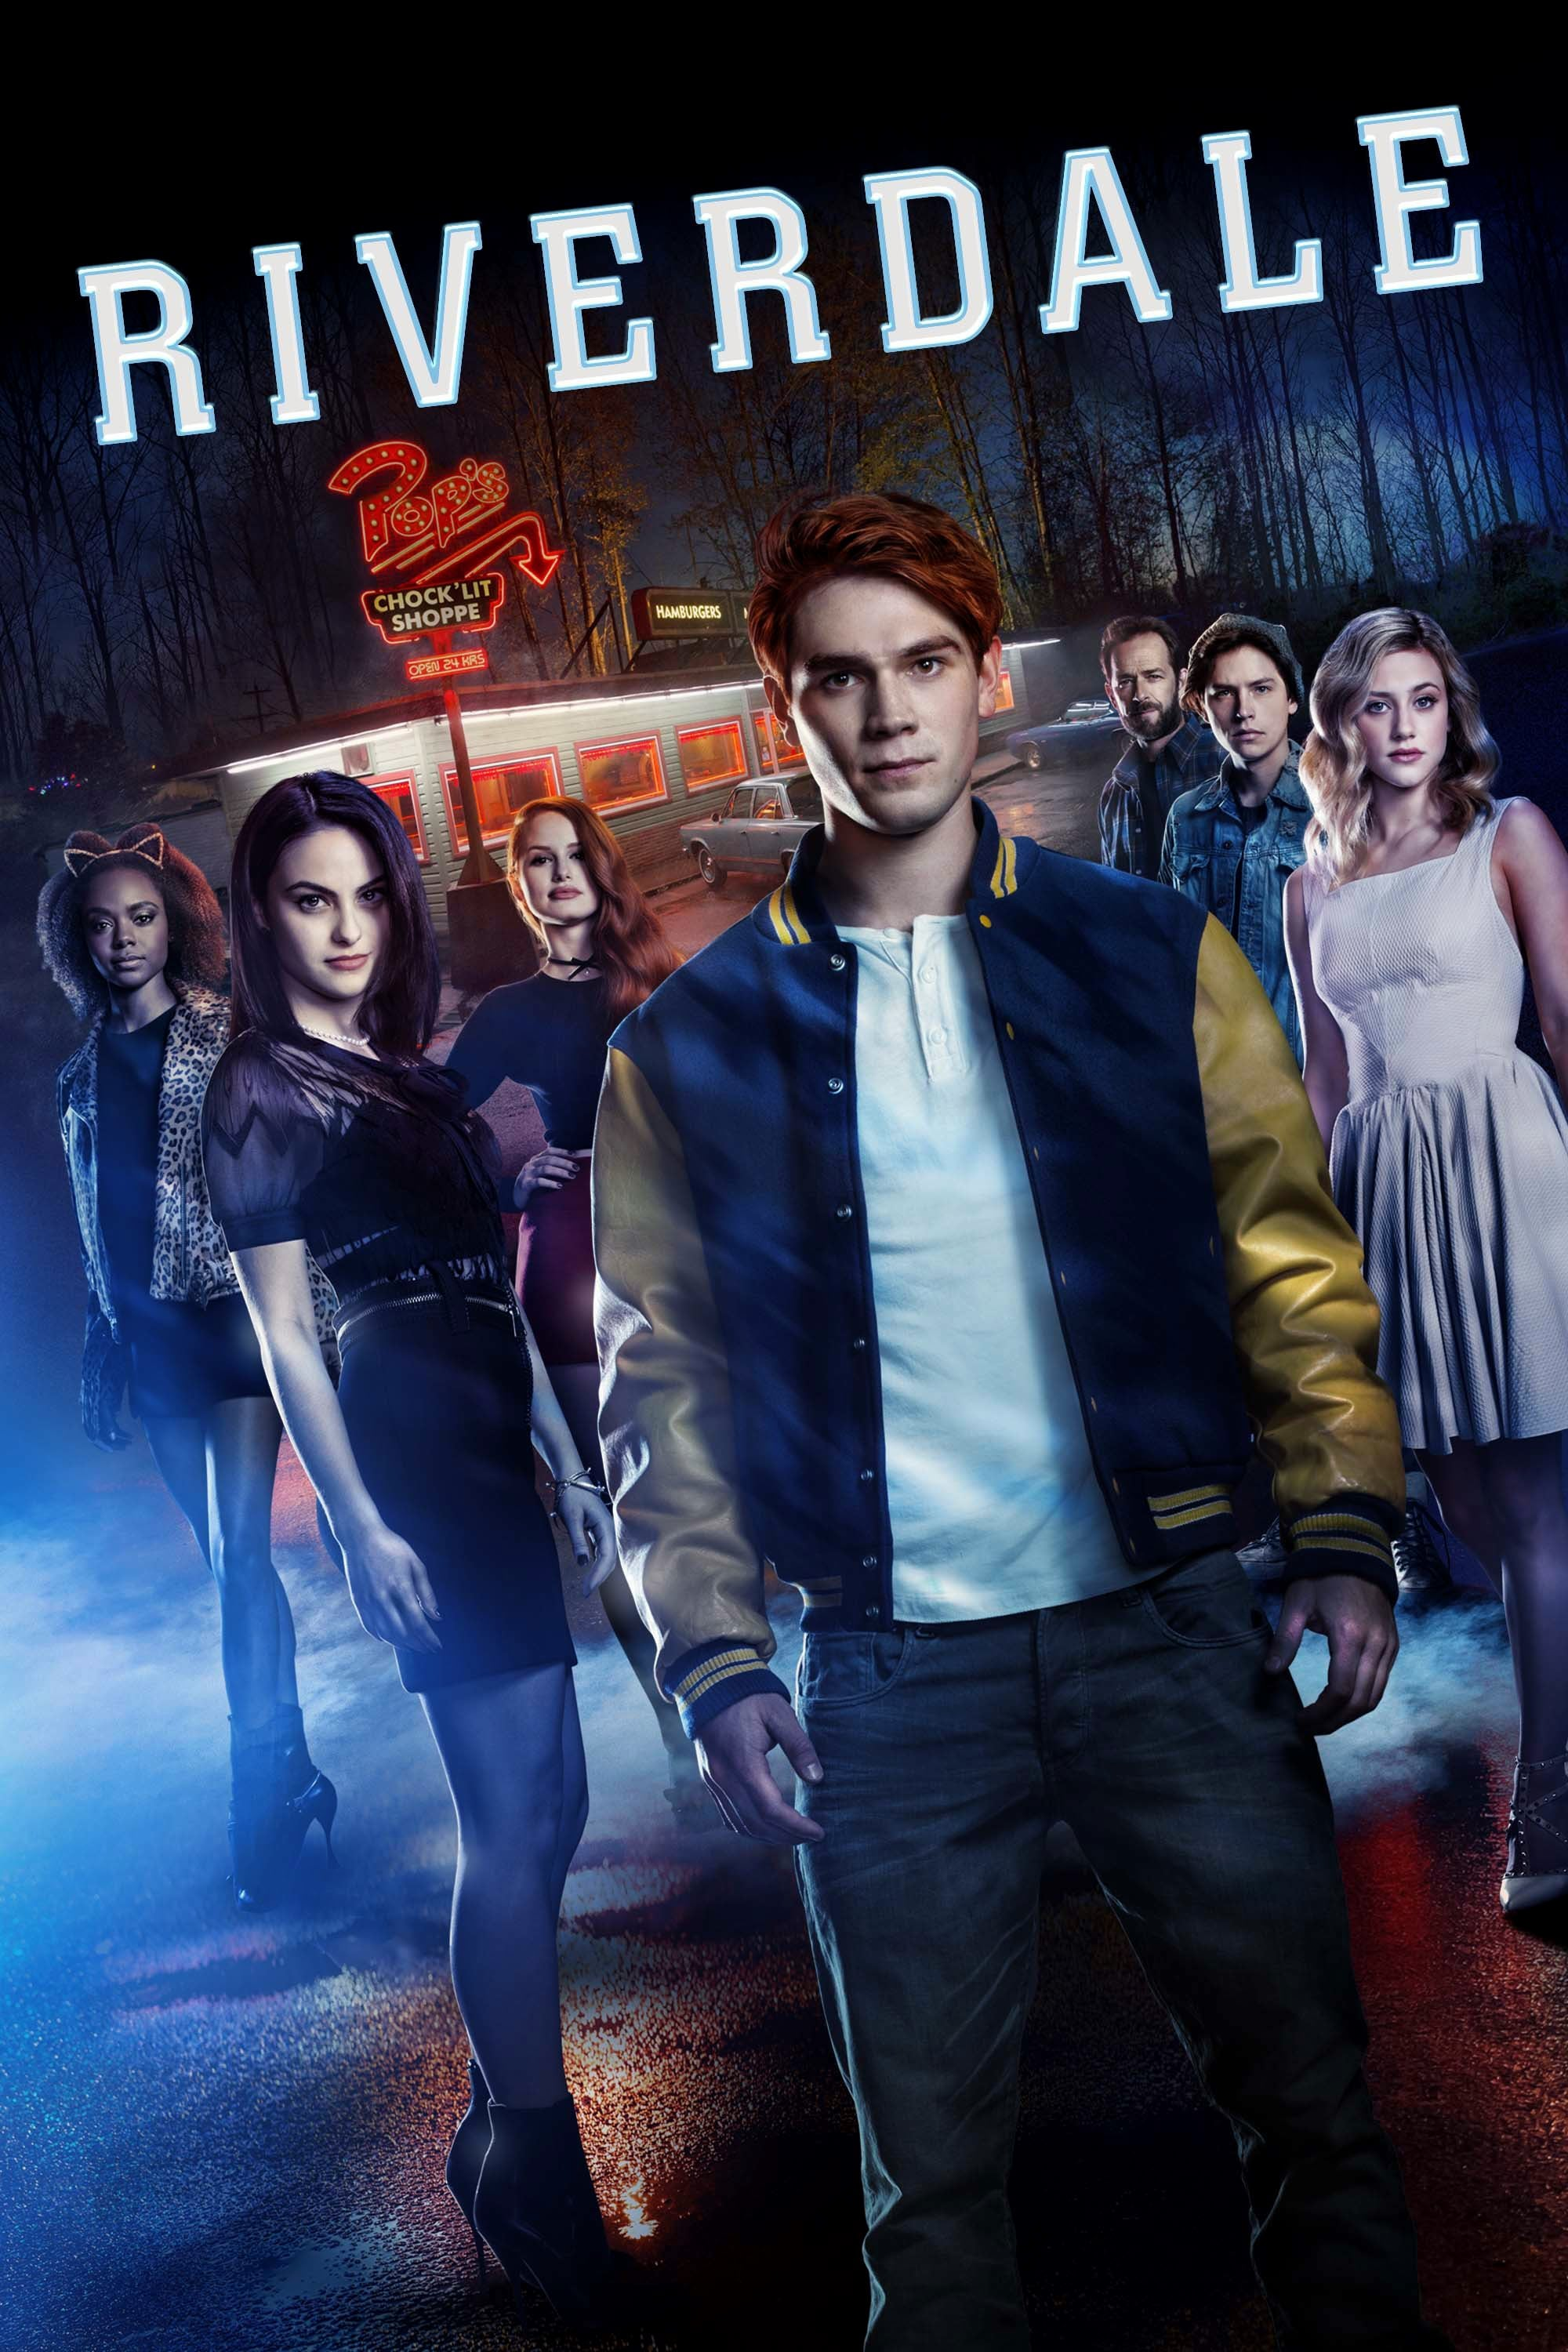 Riverdale | S01 | 2017 | English | 1080p | 720p | BluRay